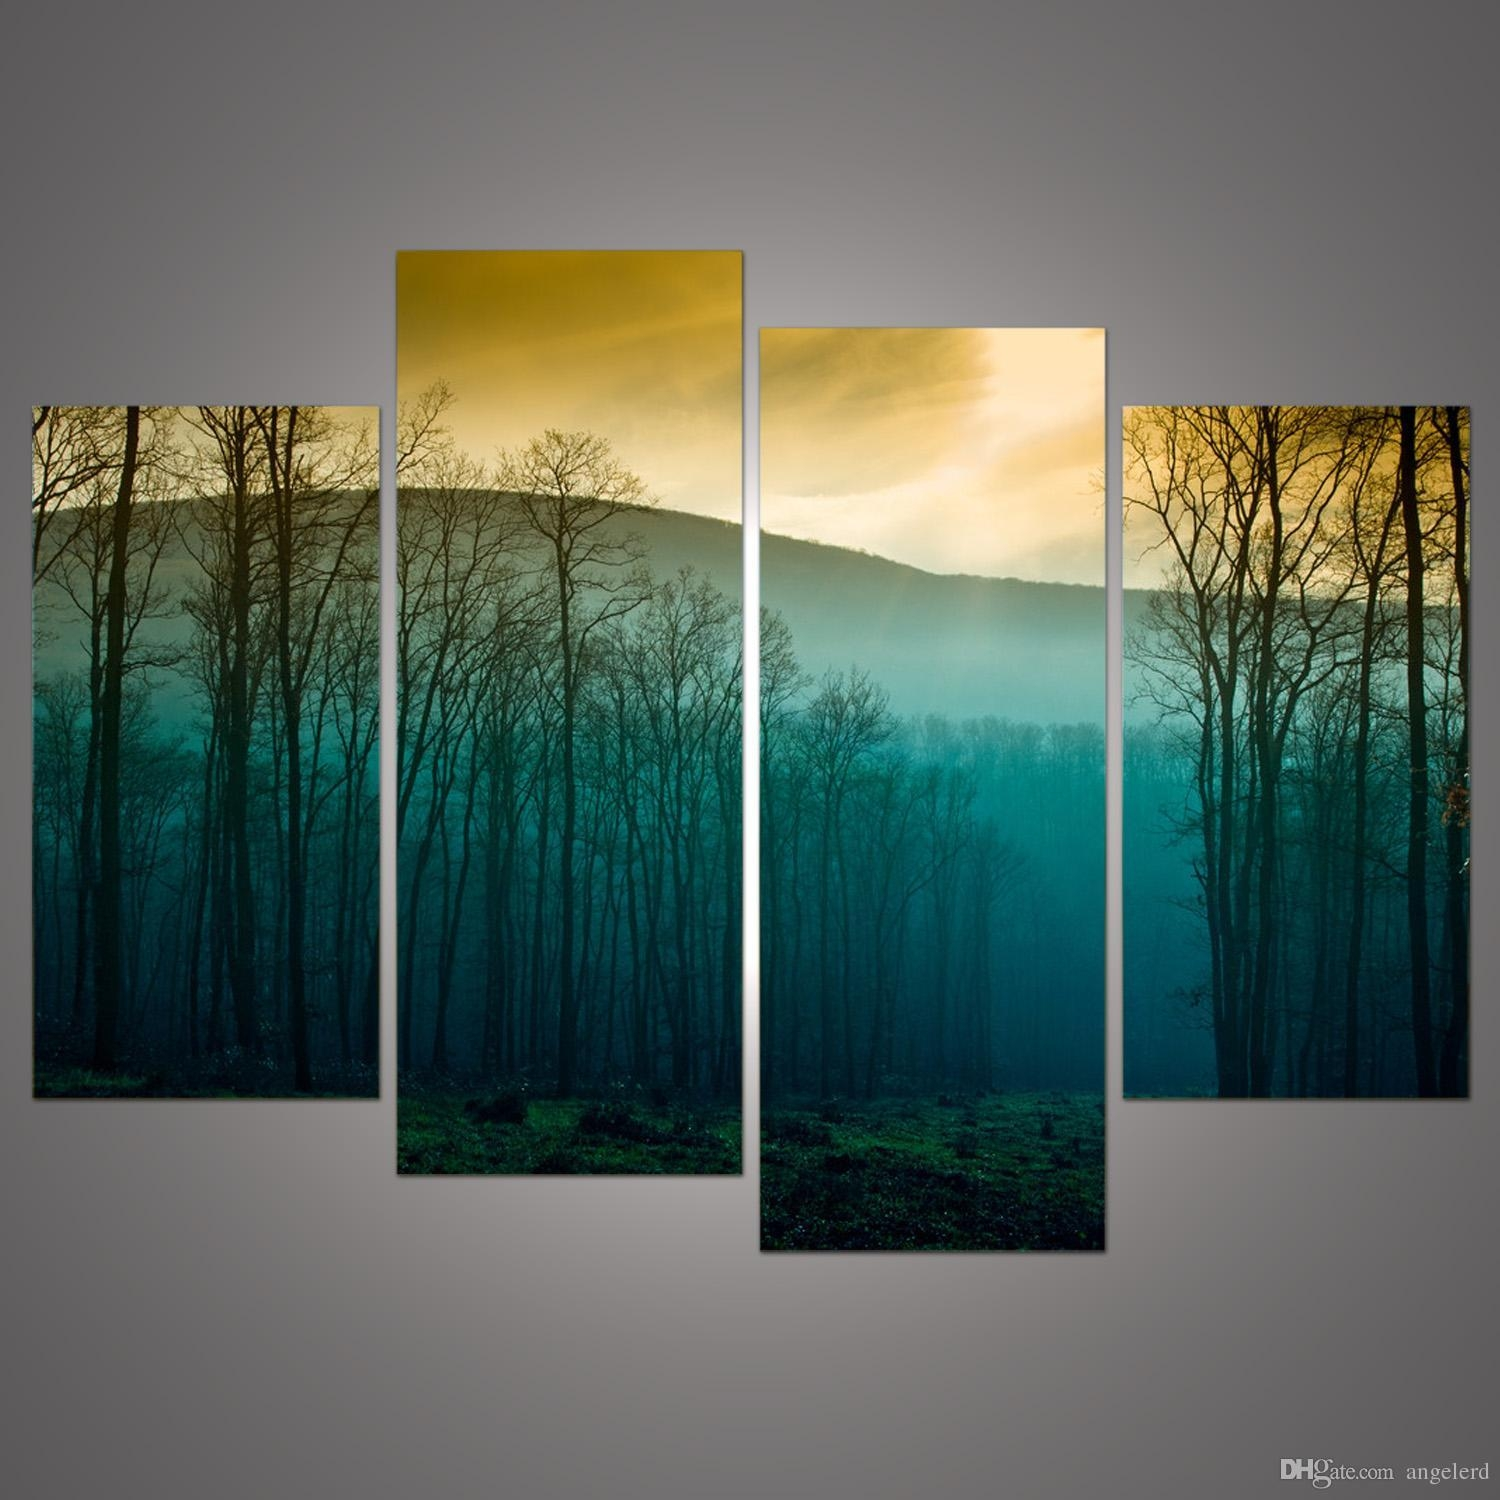 Hot Sale! Modern Abstract Huge Wall Art Painting On Canvas Intended For Huge Wall Art (Image 12 of 20)